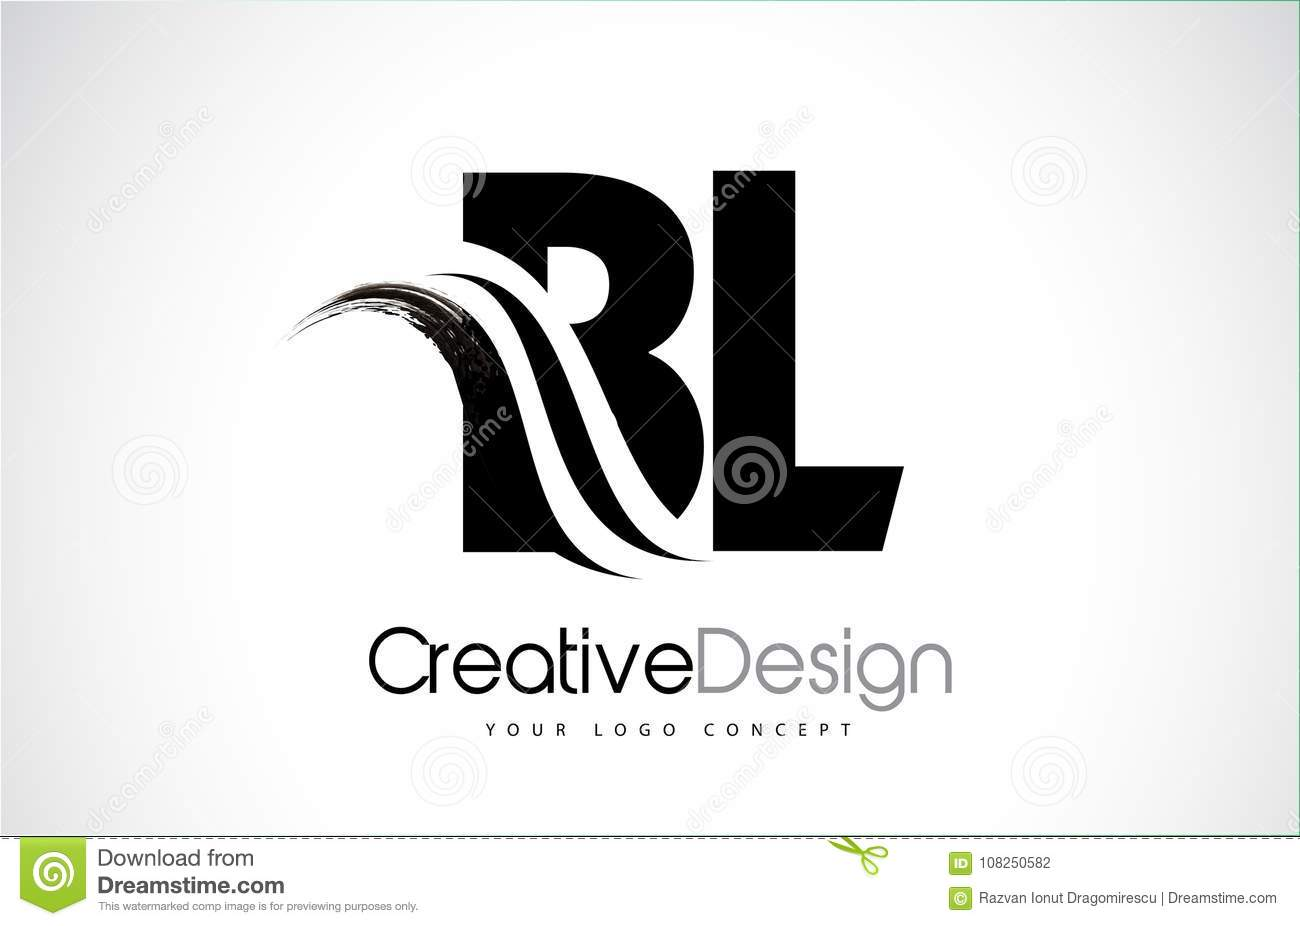 Bl B L Creative Brush Black Letters Design With Swoosh Stock Vector